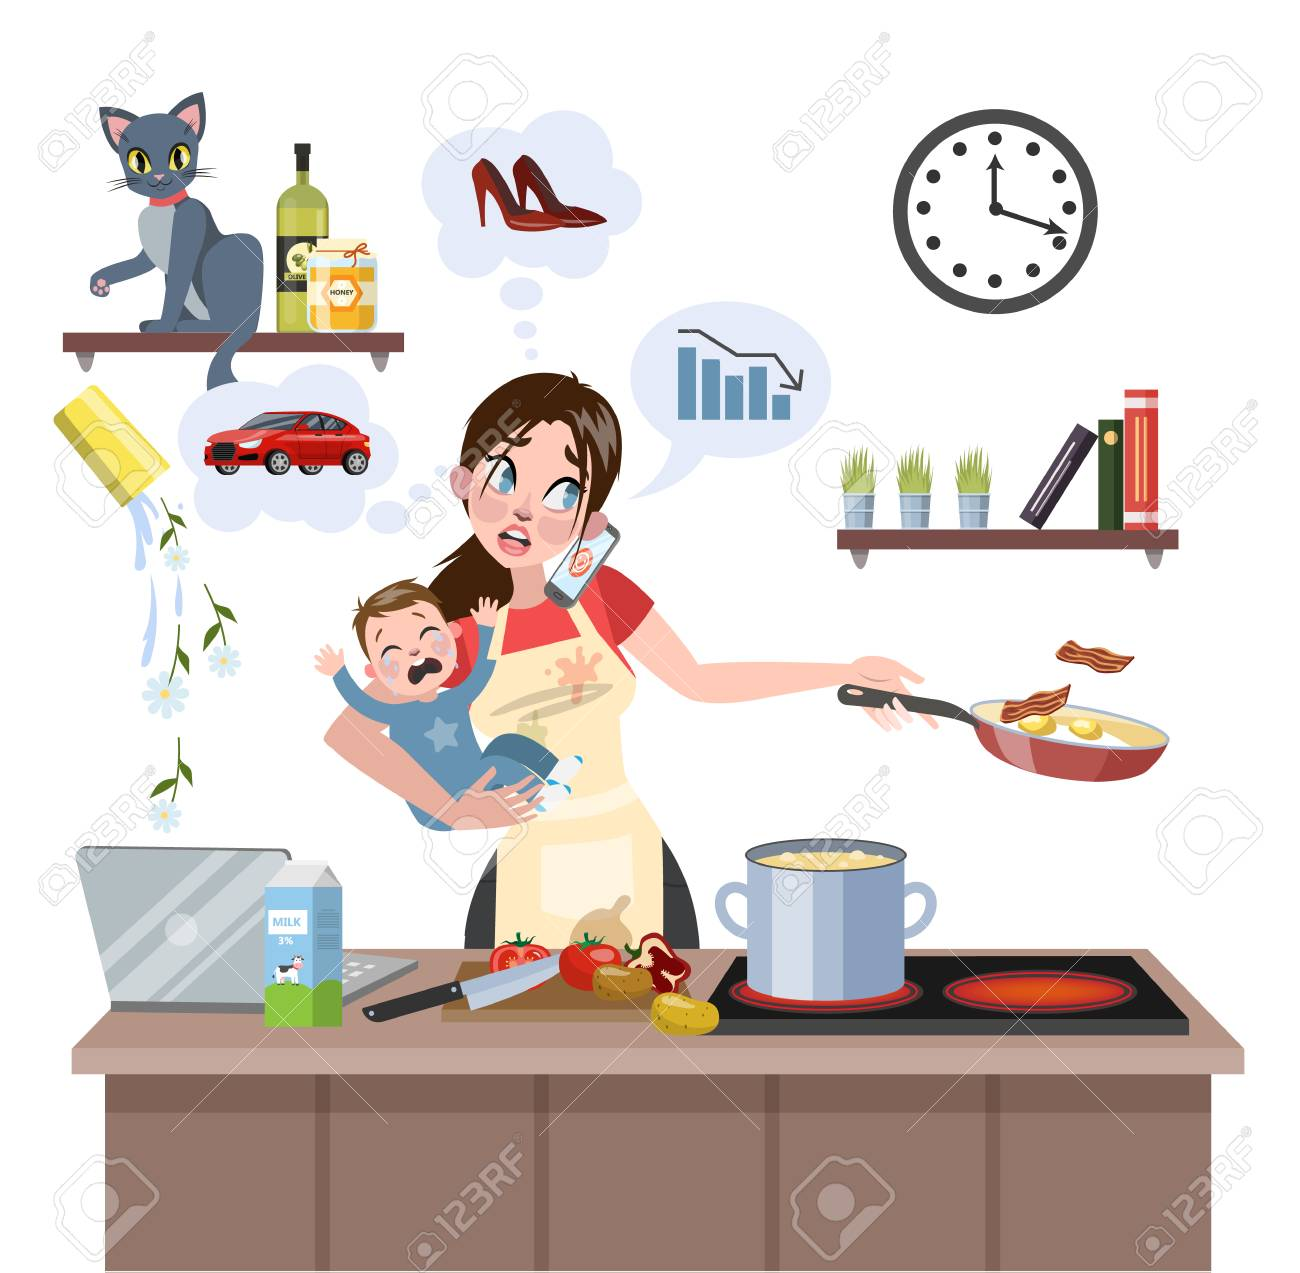 Busy multitasking mother with baby failed at doing many thing at once. Tired woman in stress with messy around. Housewife lifestyle. Isolated flat vector illustration - 109627618